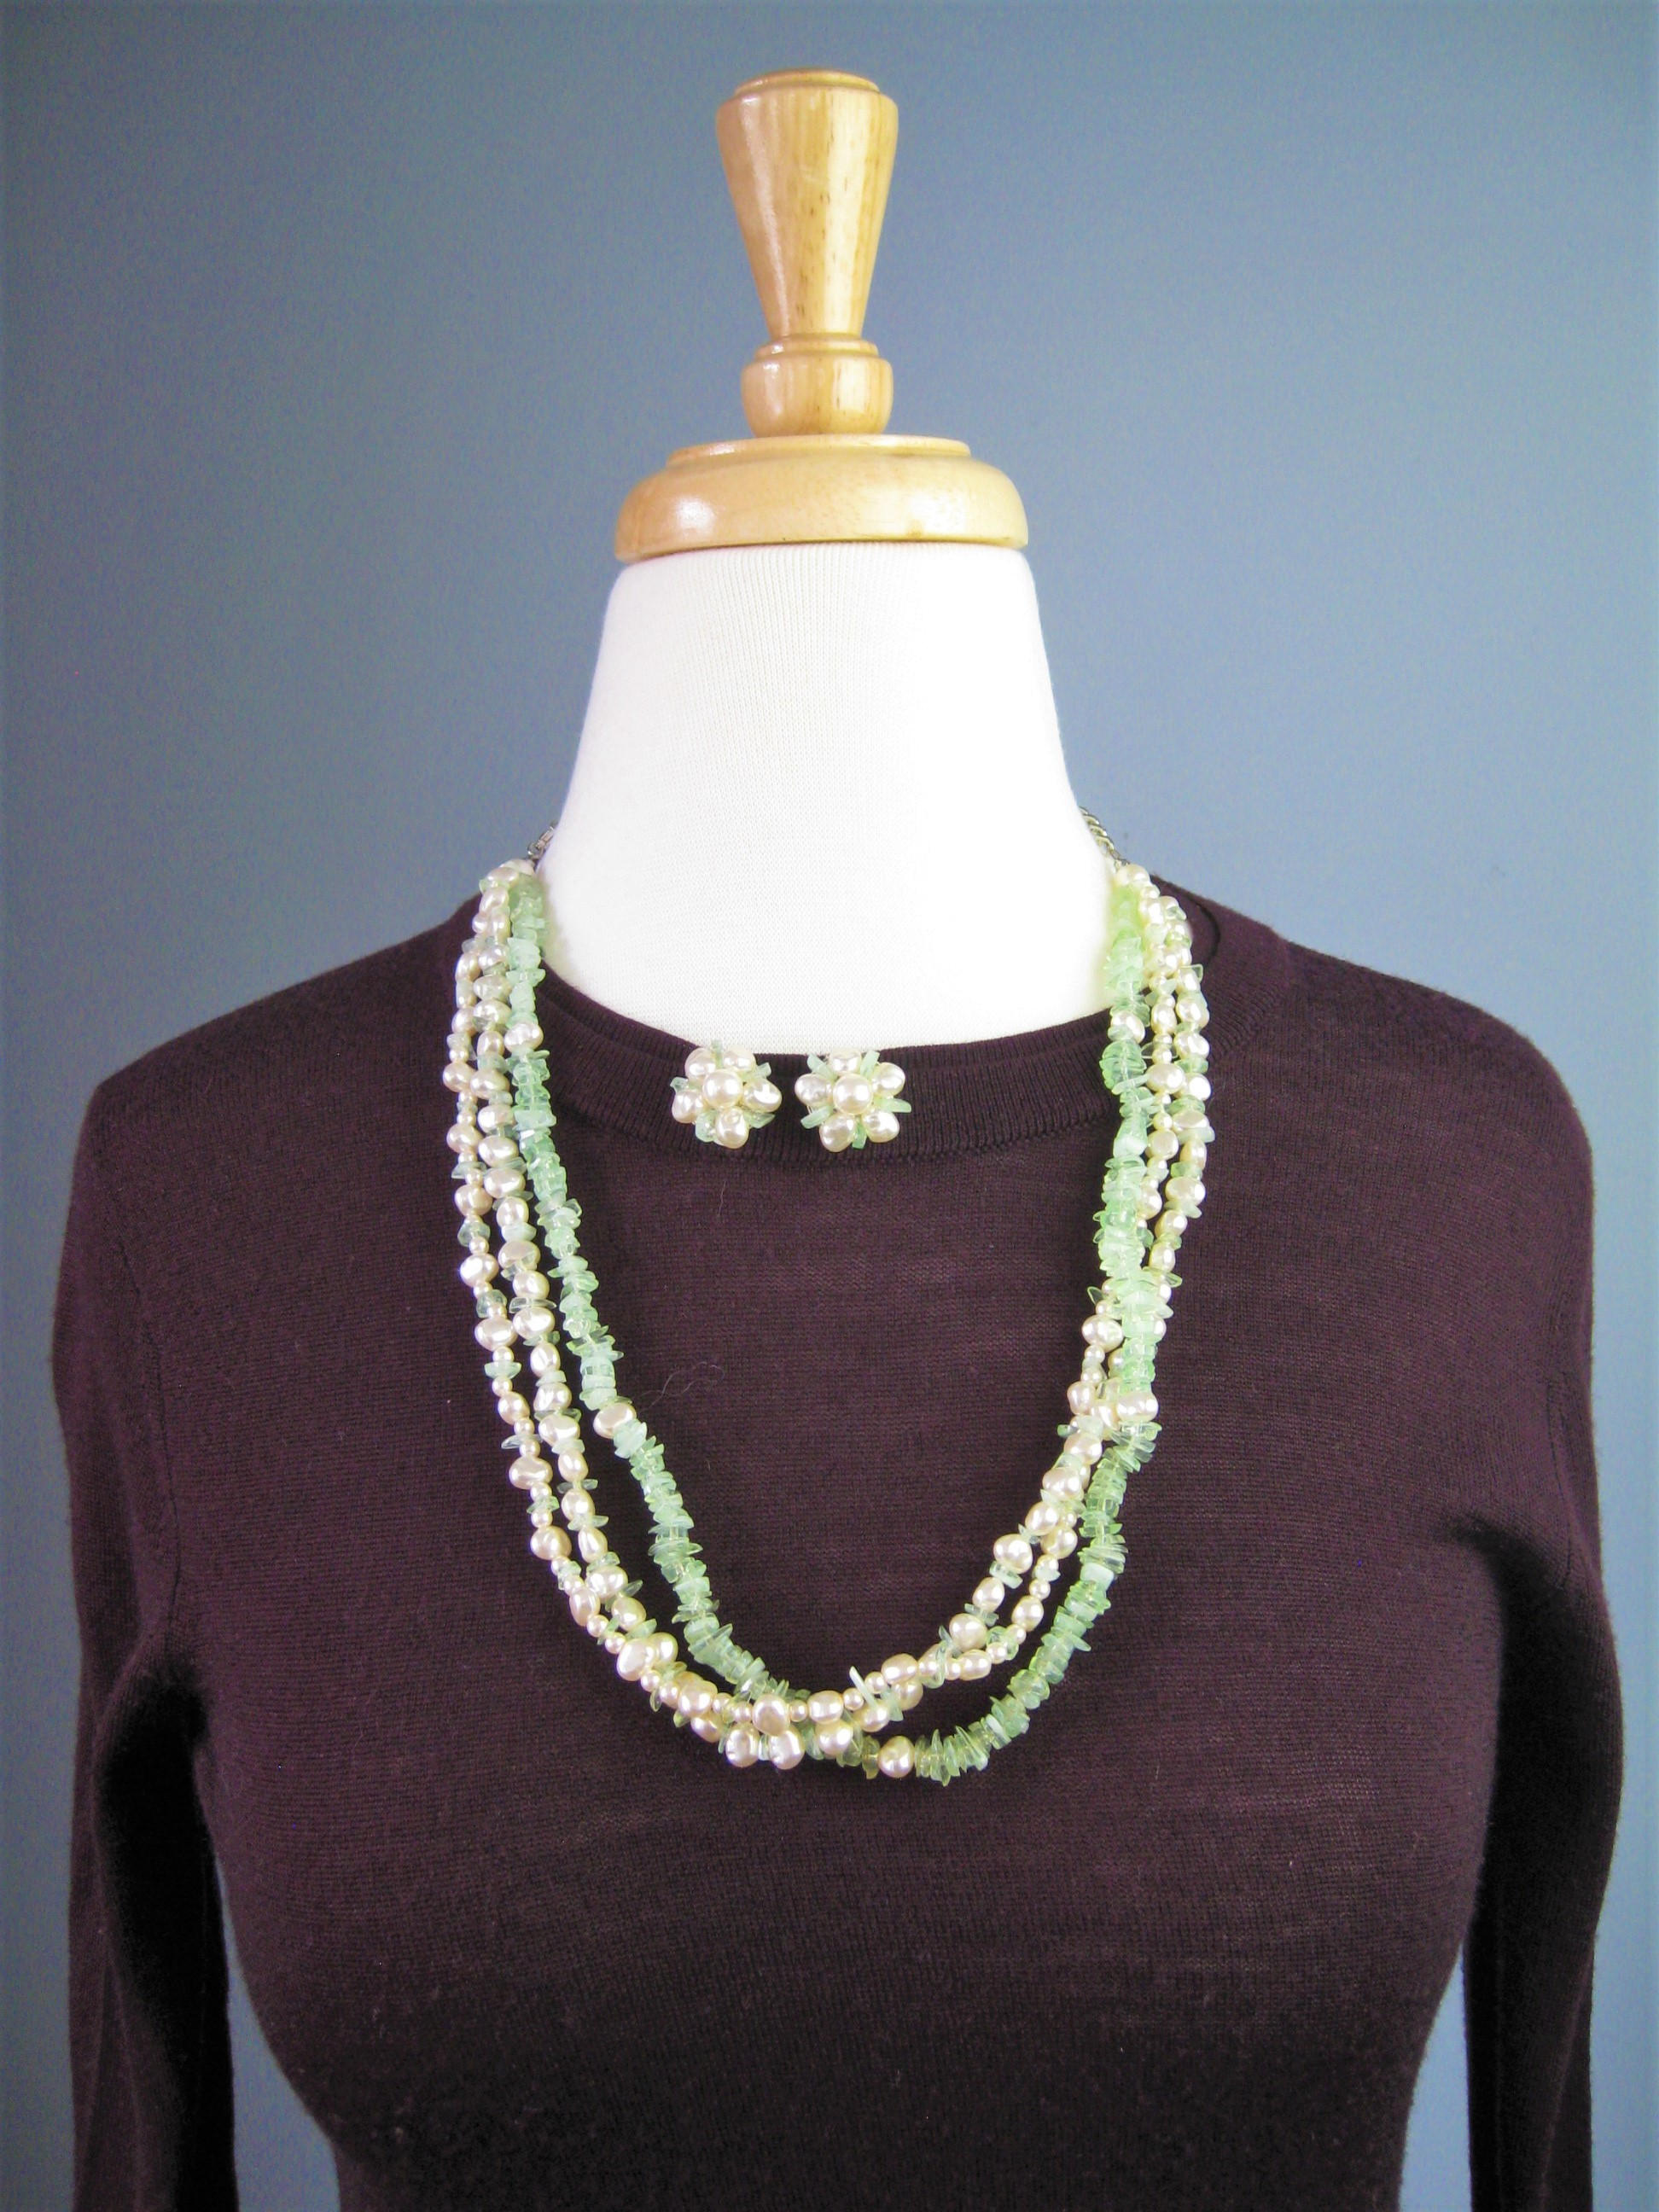 In the old days, ladies always matched their outfits carefully including their jewelry<br /> This set was not necessarily purchased together but look perfect together<br /> Multistrand necklace w green & white stone chips & matching clip earrings w faux pearls & green bits<br /> The necklace can be twisted and worn as a torsade choker. It has an extender section on the chain so you can play with the length.<br /> As shown, the necklace is 26in long.<br /> The earrings are 3/4in across.<br /> <br /> Thanks for looking!